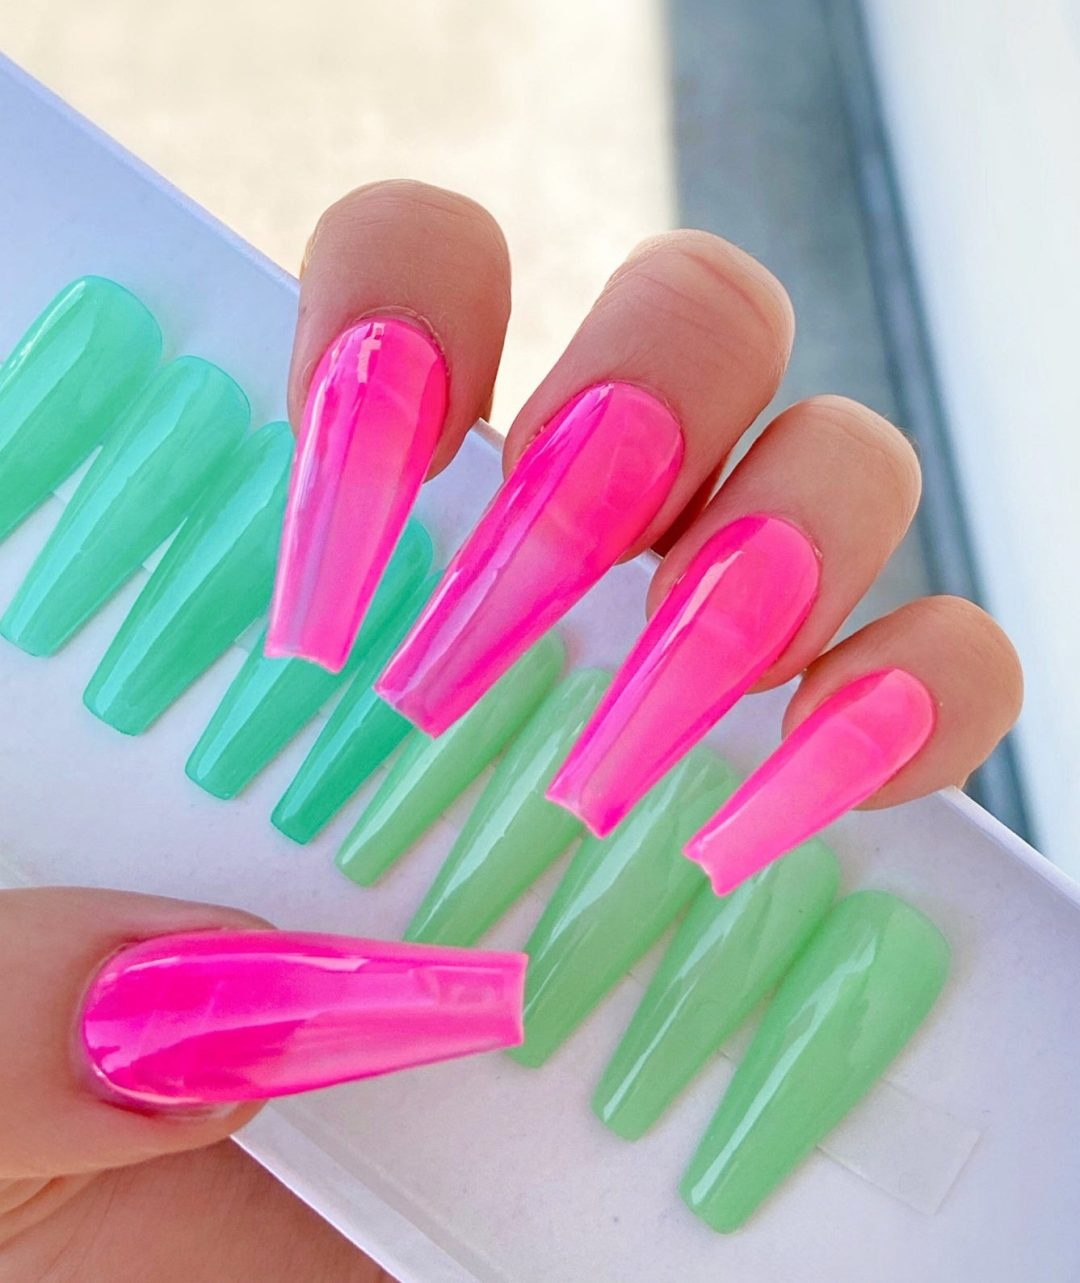 Long hot pink jelly nails in coffin shape